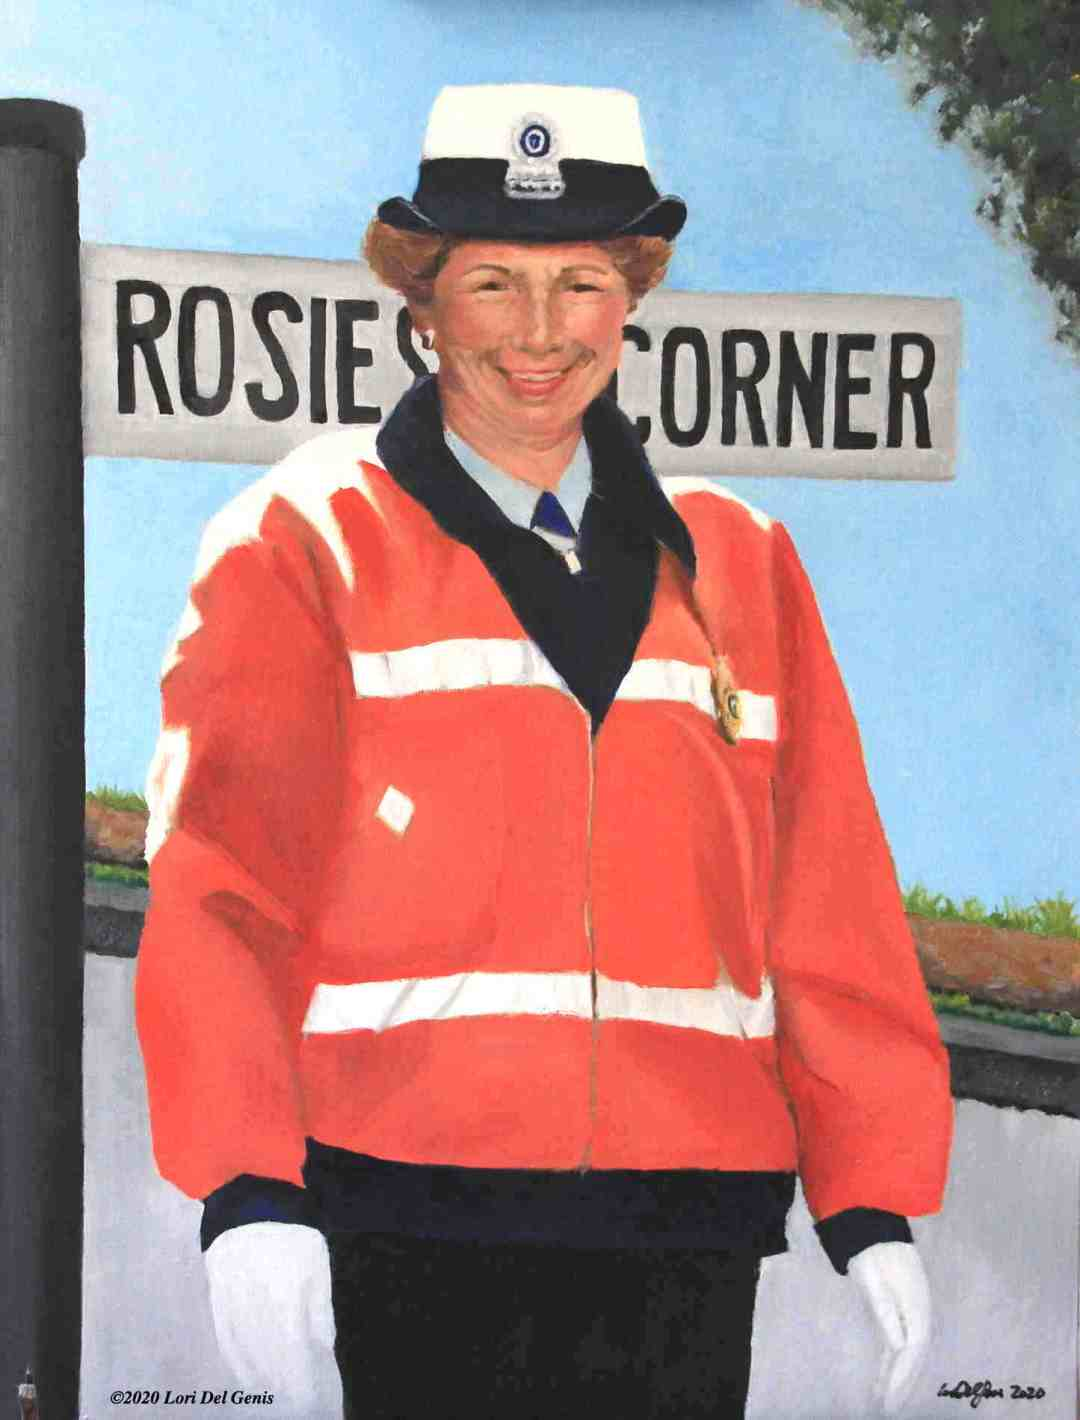 Oil portrait of Rosie Cleveland as commissioned by the Stoneham Cultural Council. (Lori Del Genis, 2020)